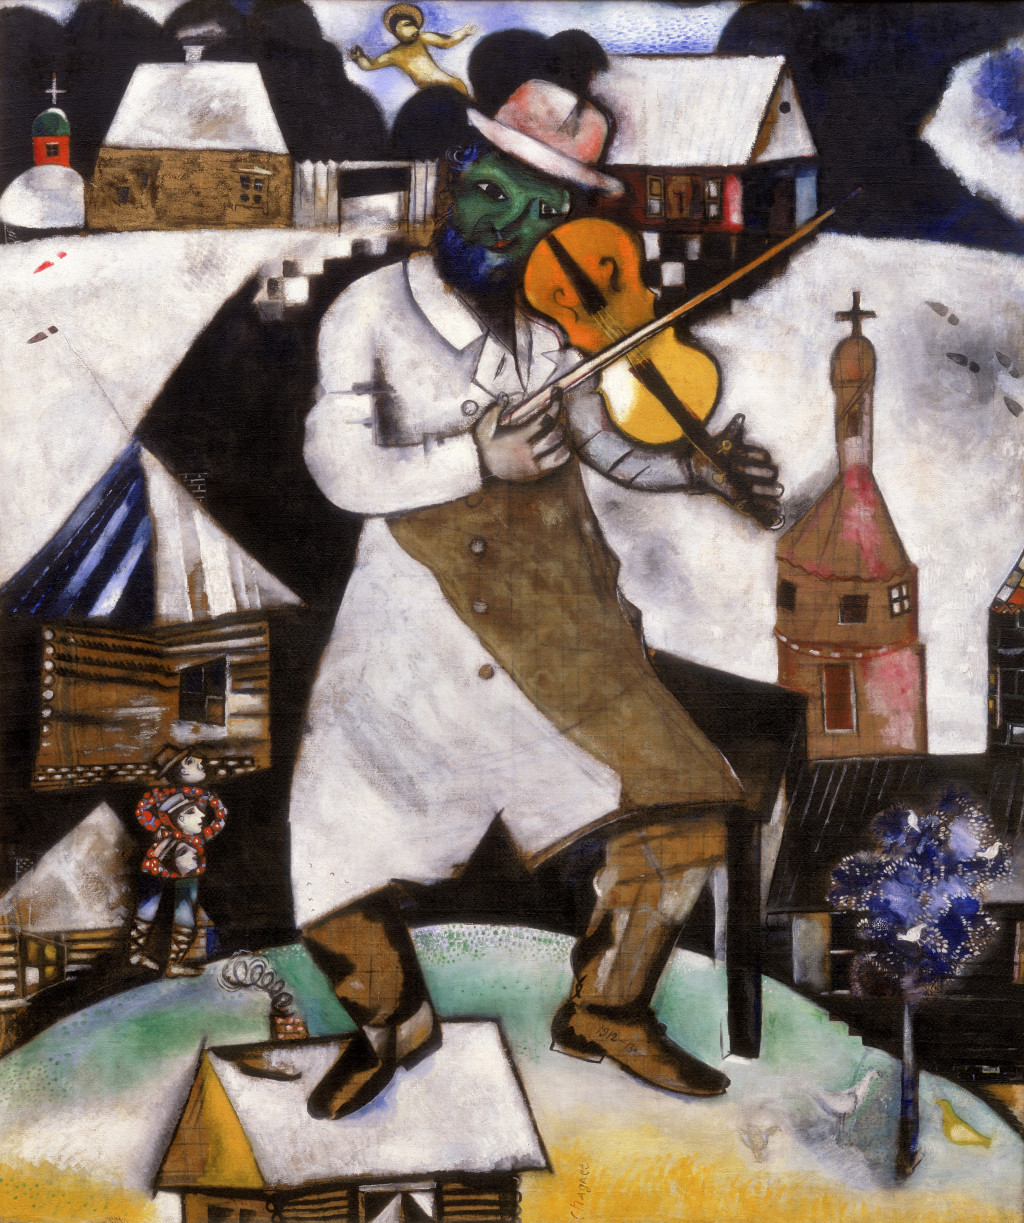 Marc Chagall, Le violoniste (The Fiddler), 1912-1913. © Marc Chagall, c/o Pictoright Amsterdam/Chagall ®, Chagall is a registered trademark, owned by Comité Marc Chagall. Collection Stedelijk Museum Amsterdam, on loan from the Cultural Heritage Agency of